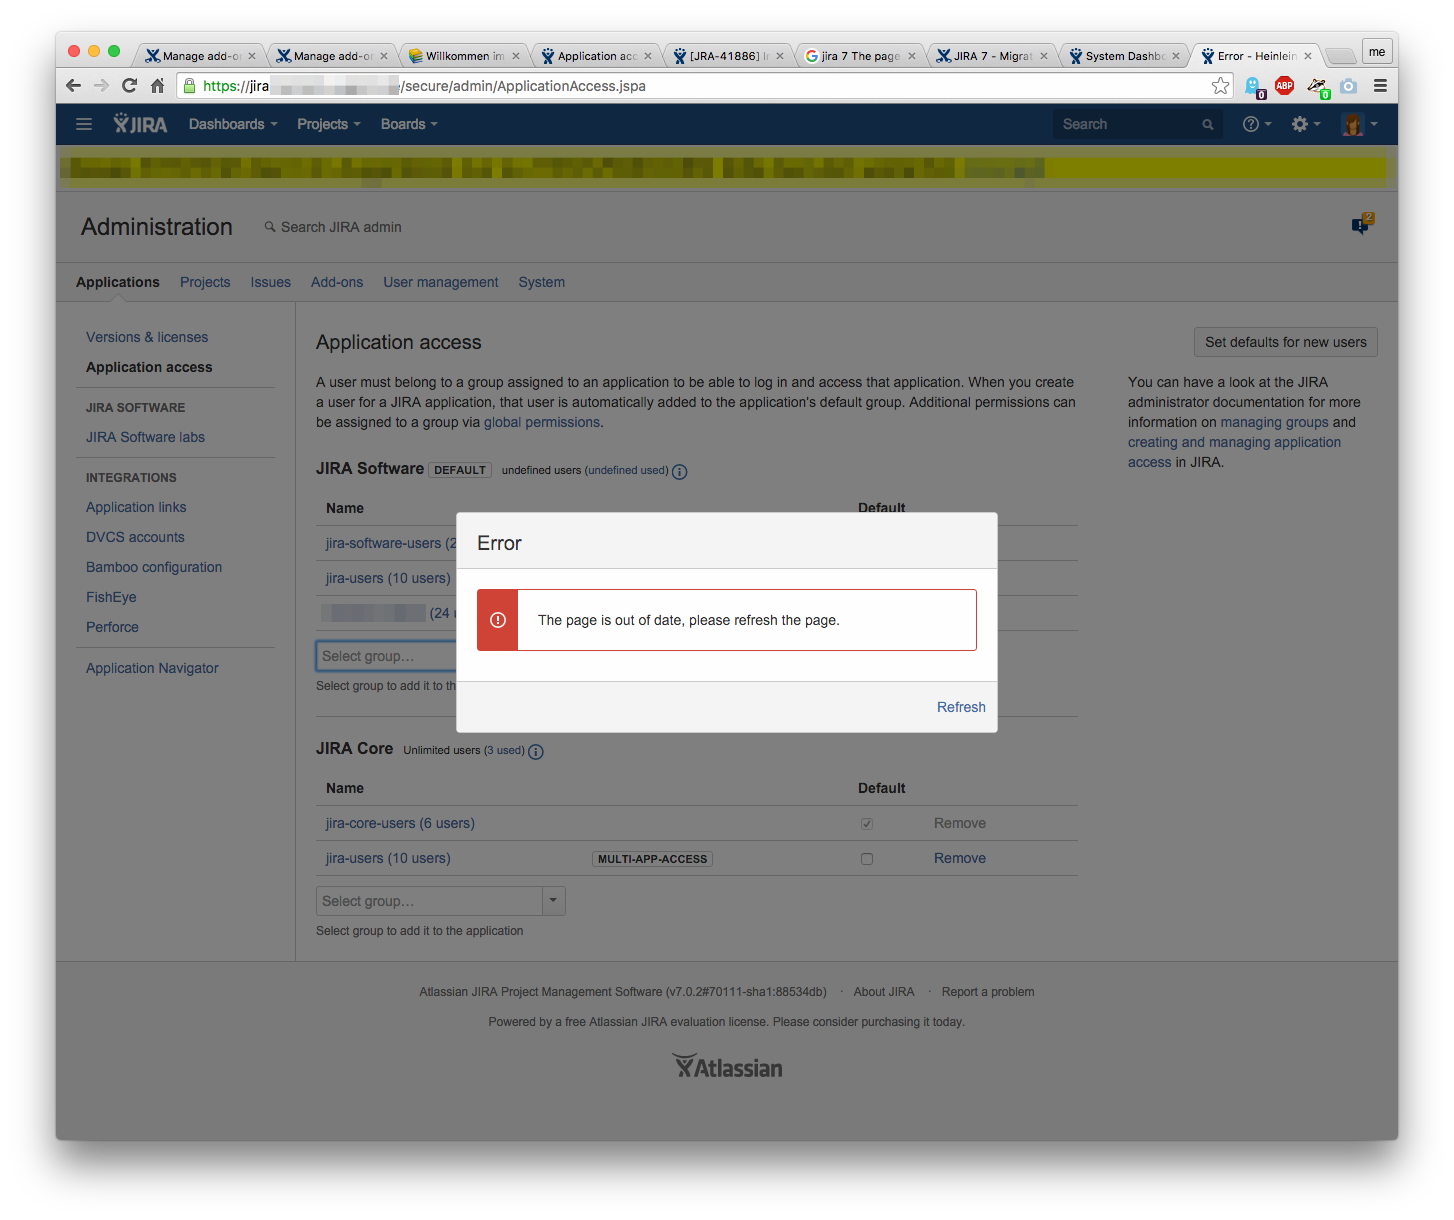 Error when managing application access in JIRA: The page is out of